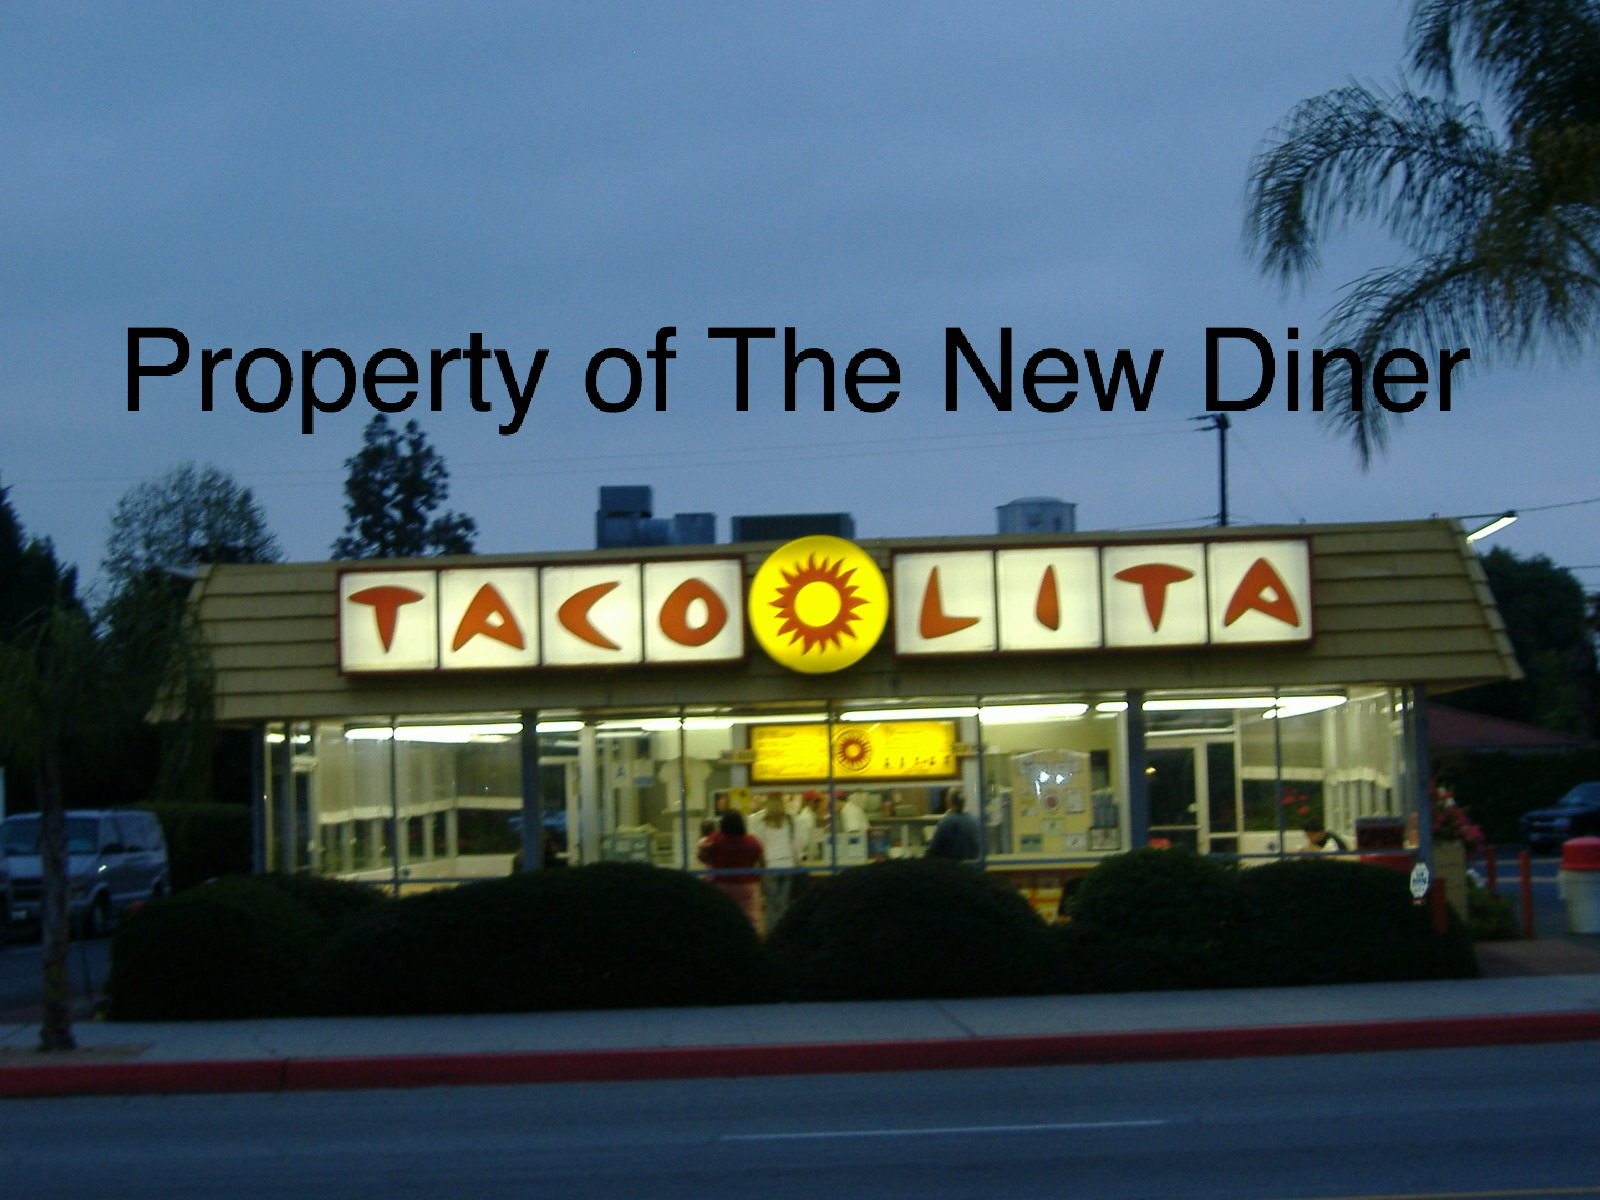 The New Diner: Taco Lita